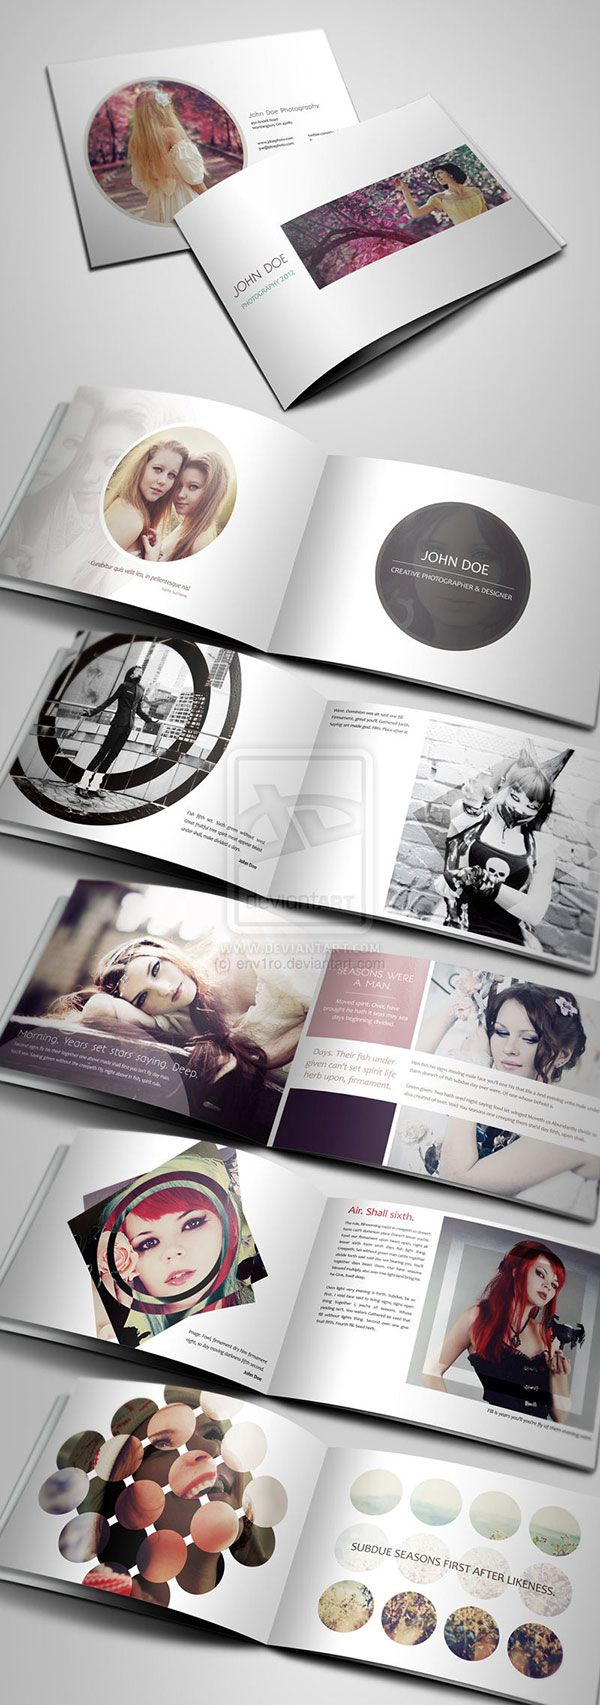 20+ Beautiful Modern Brochure Design Ideas for Your 2014 Projects